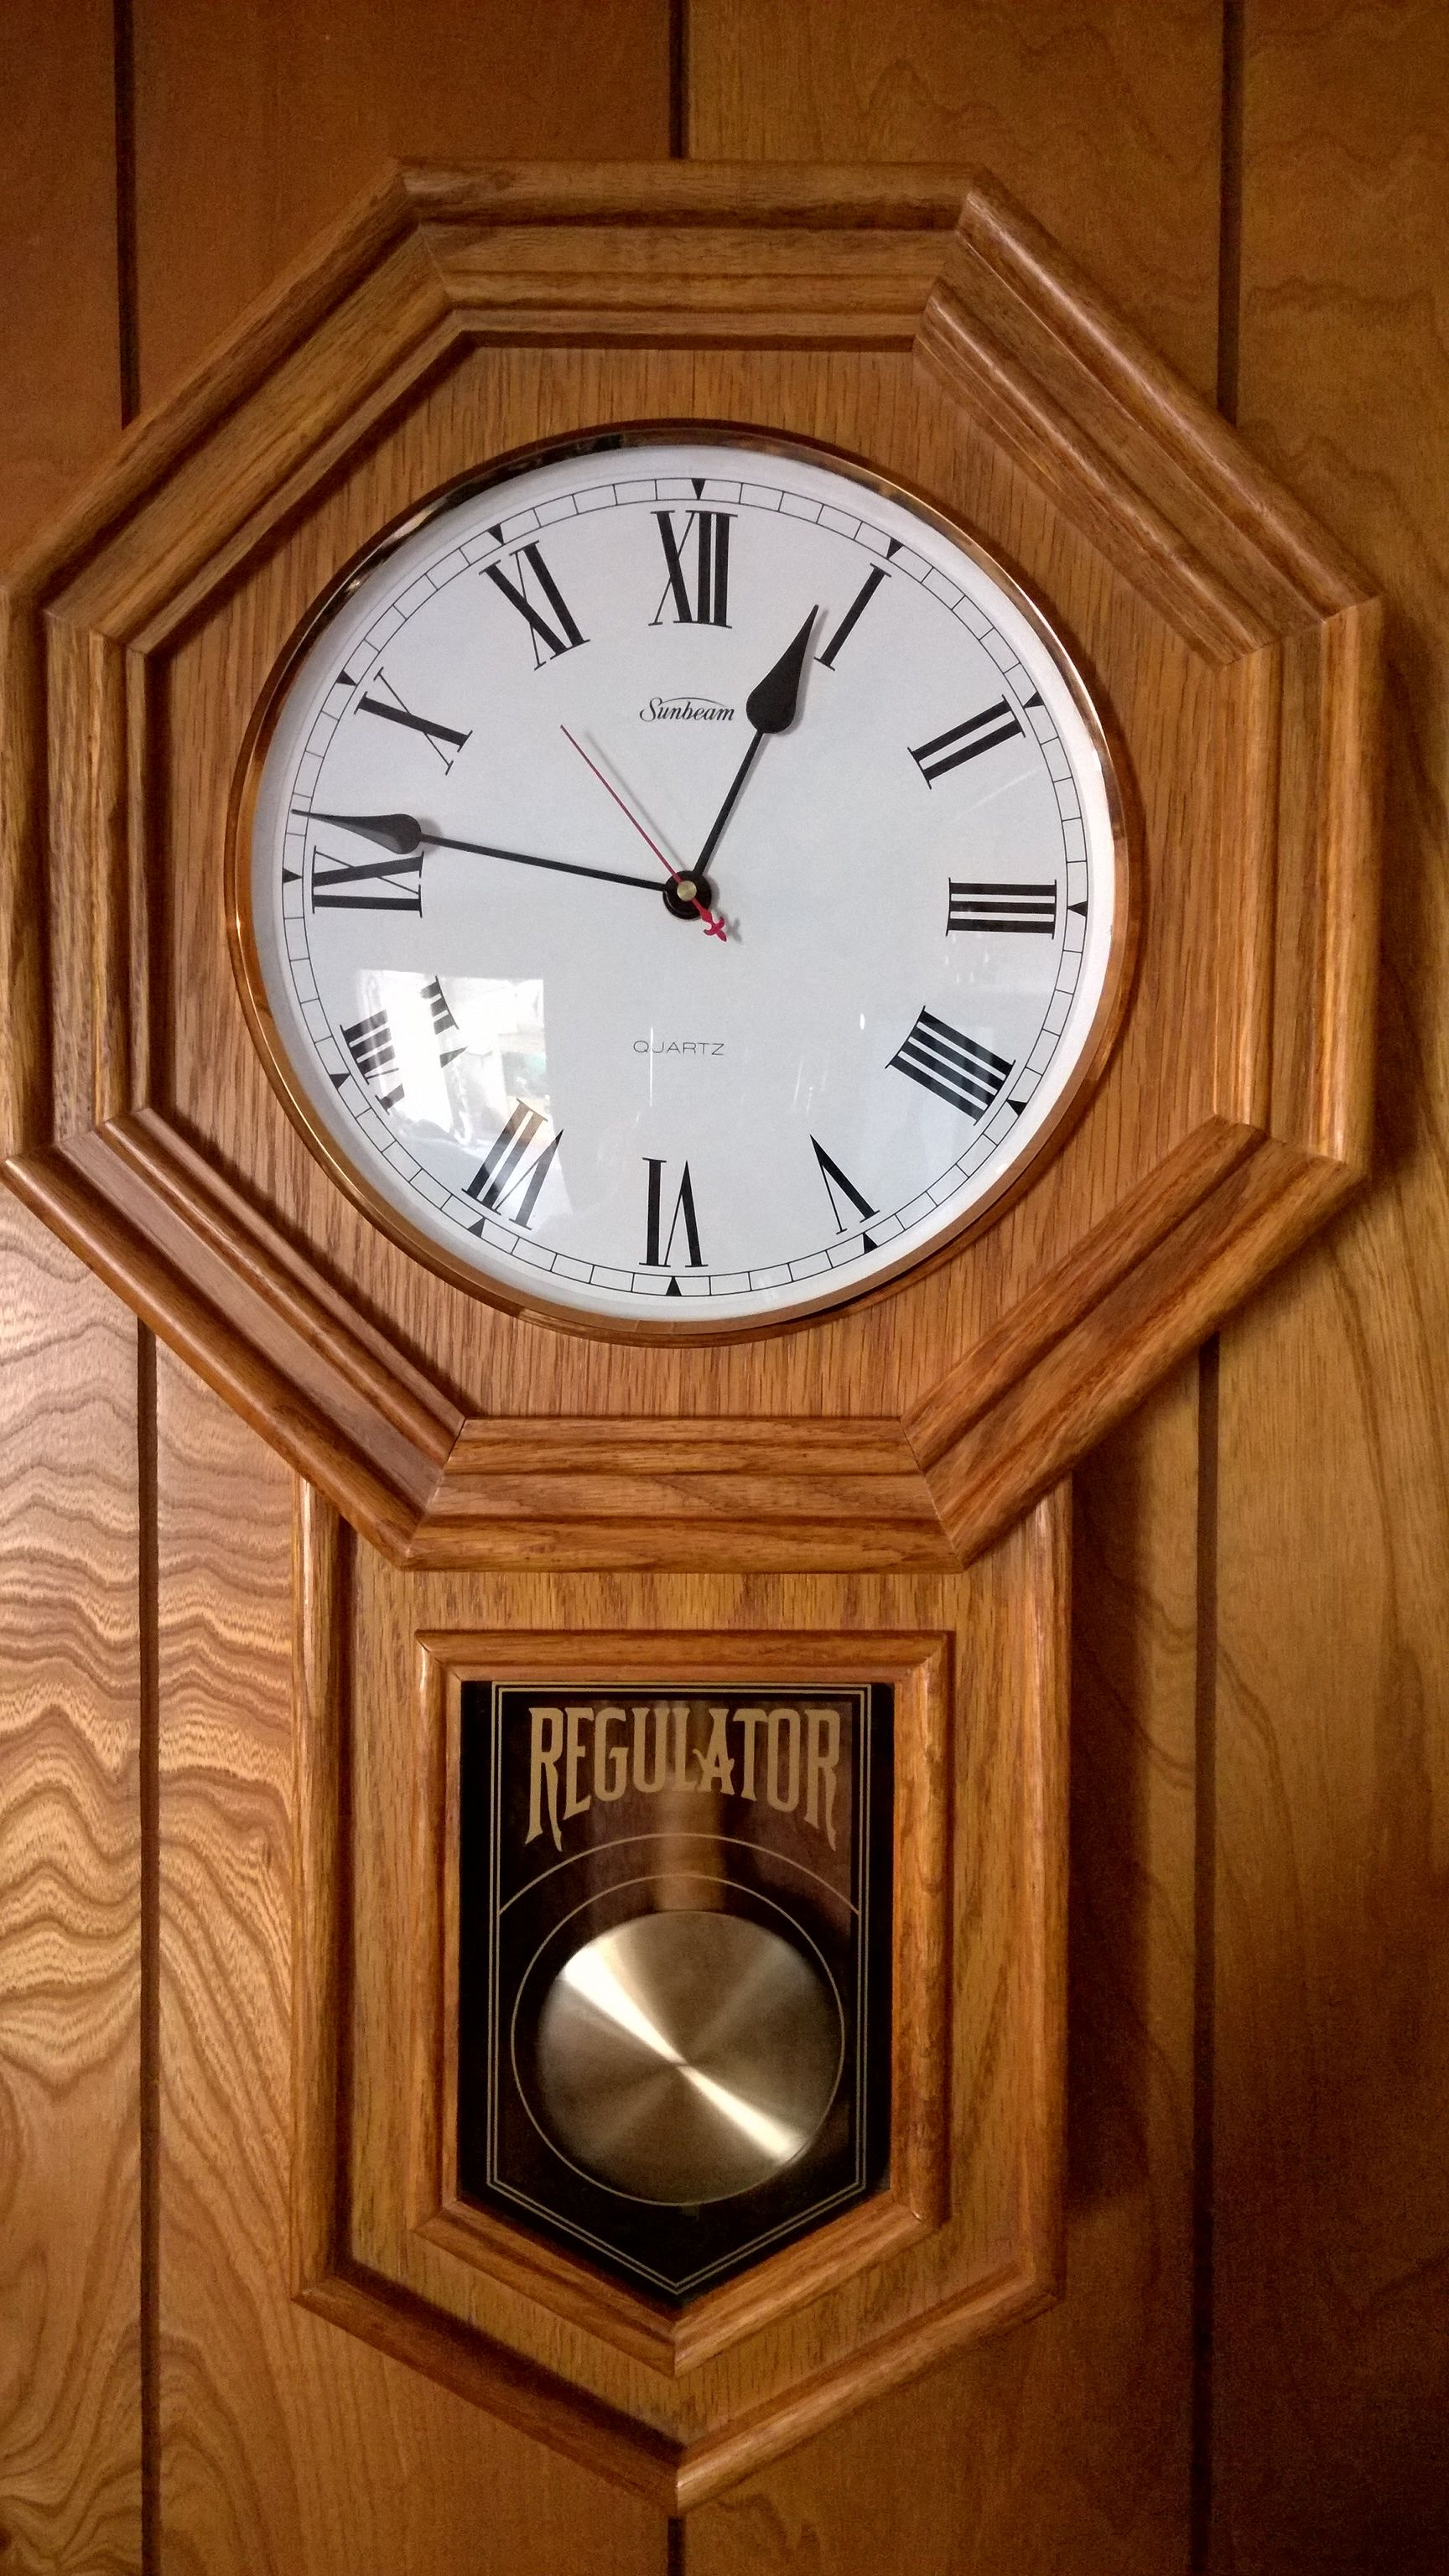 Saless garage wood clocks wall clocks and clocks vintage sunbeam 24 quartz regulator wall clock oak wood in saless garage sale amipublicfo Choice Image